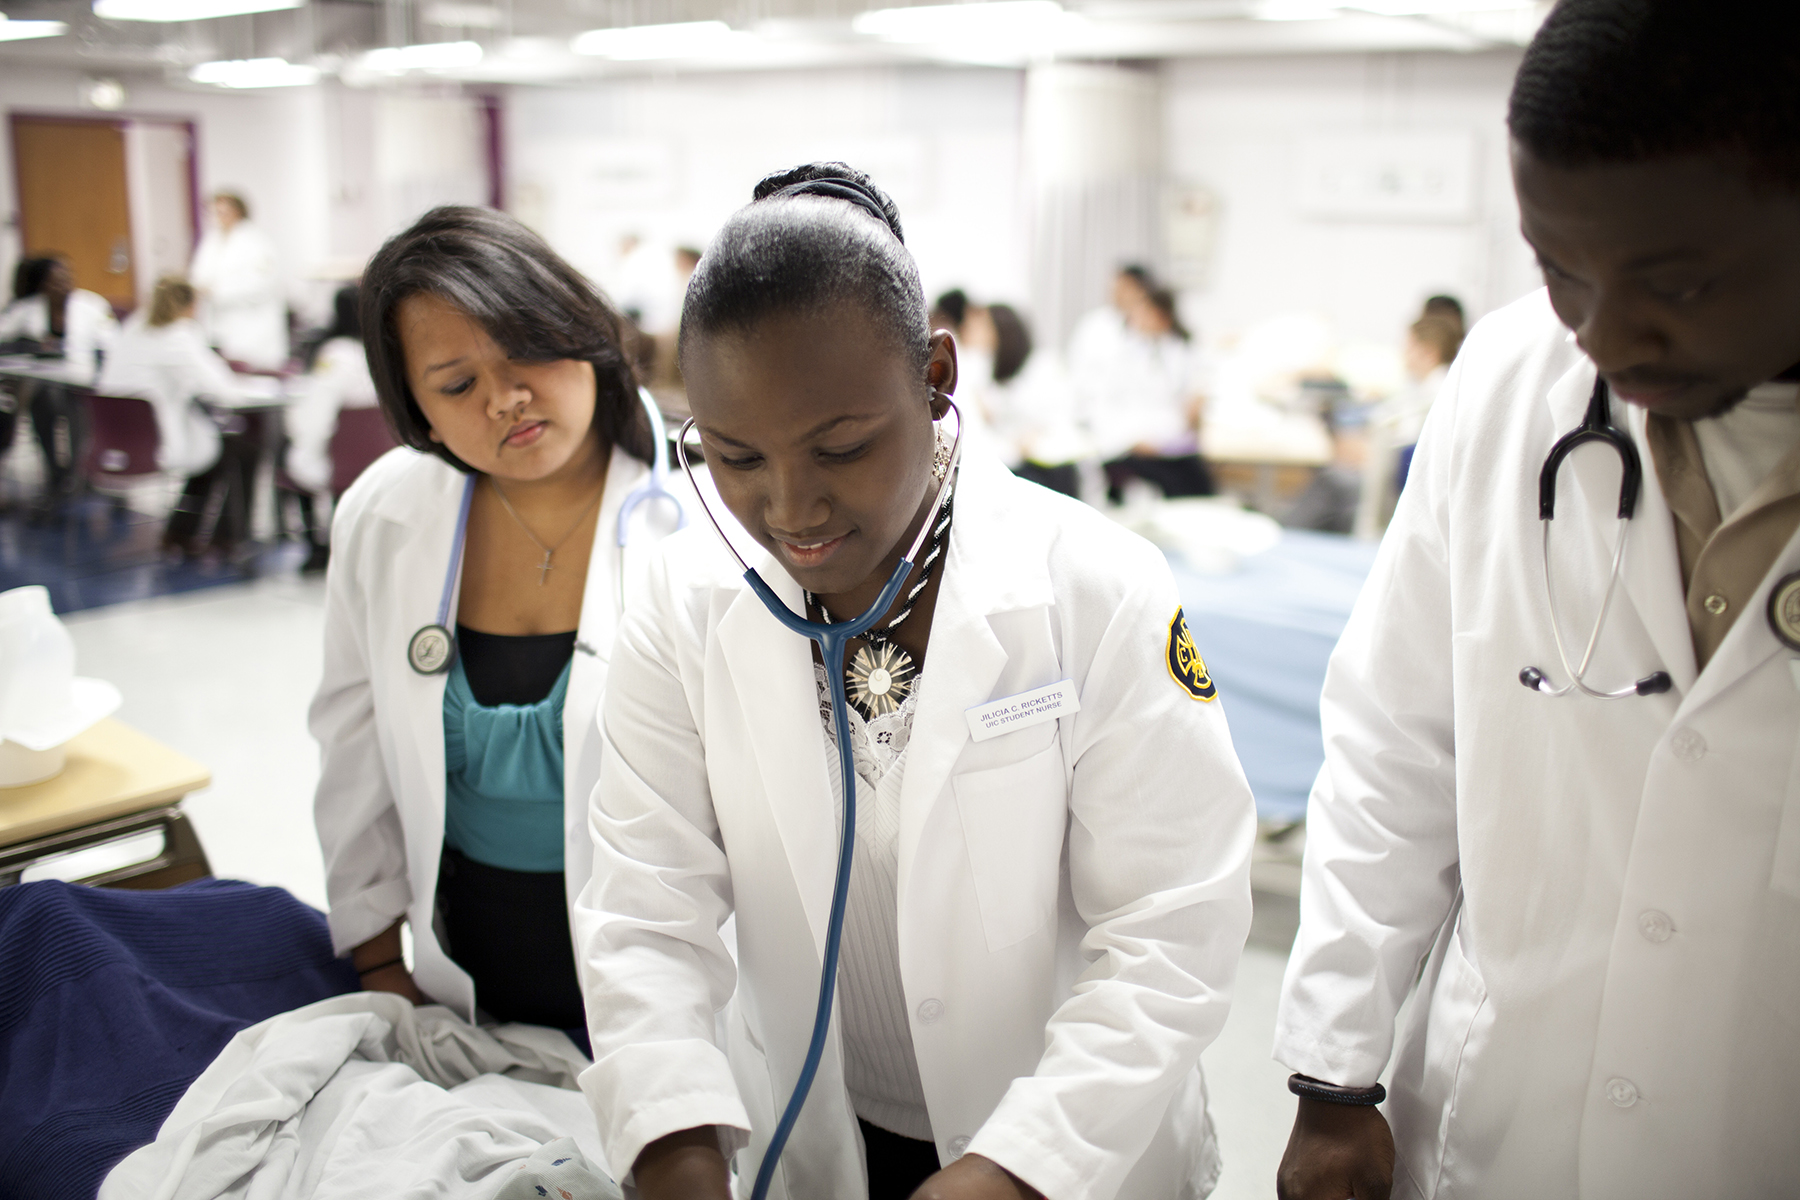 Nursing college in illinois with mri subjects